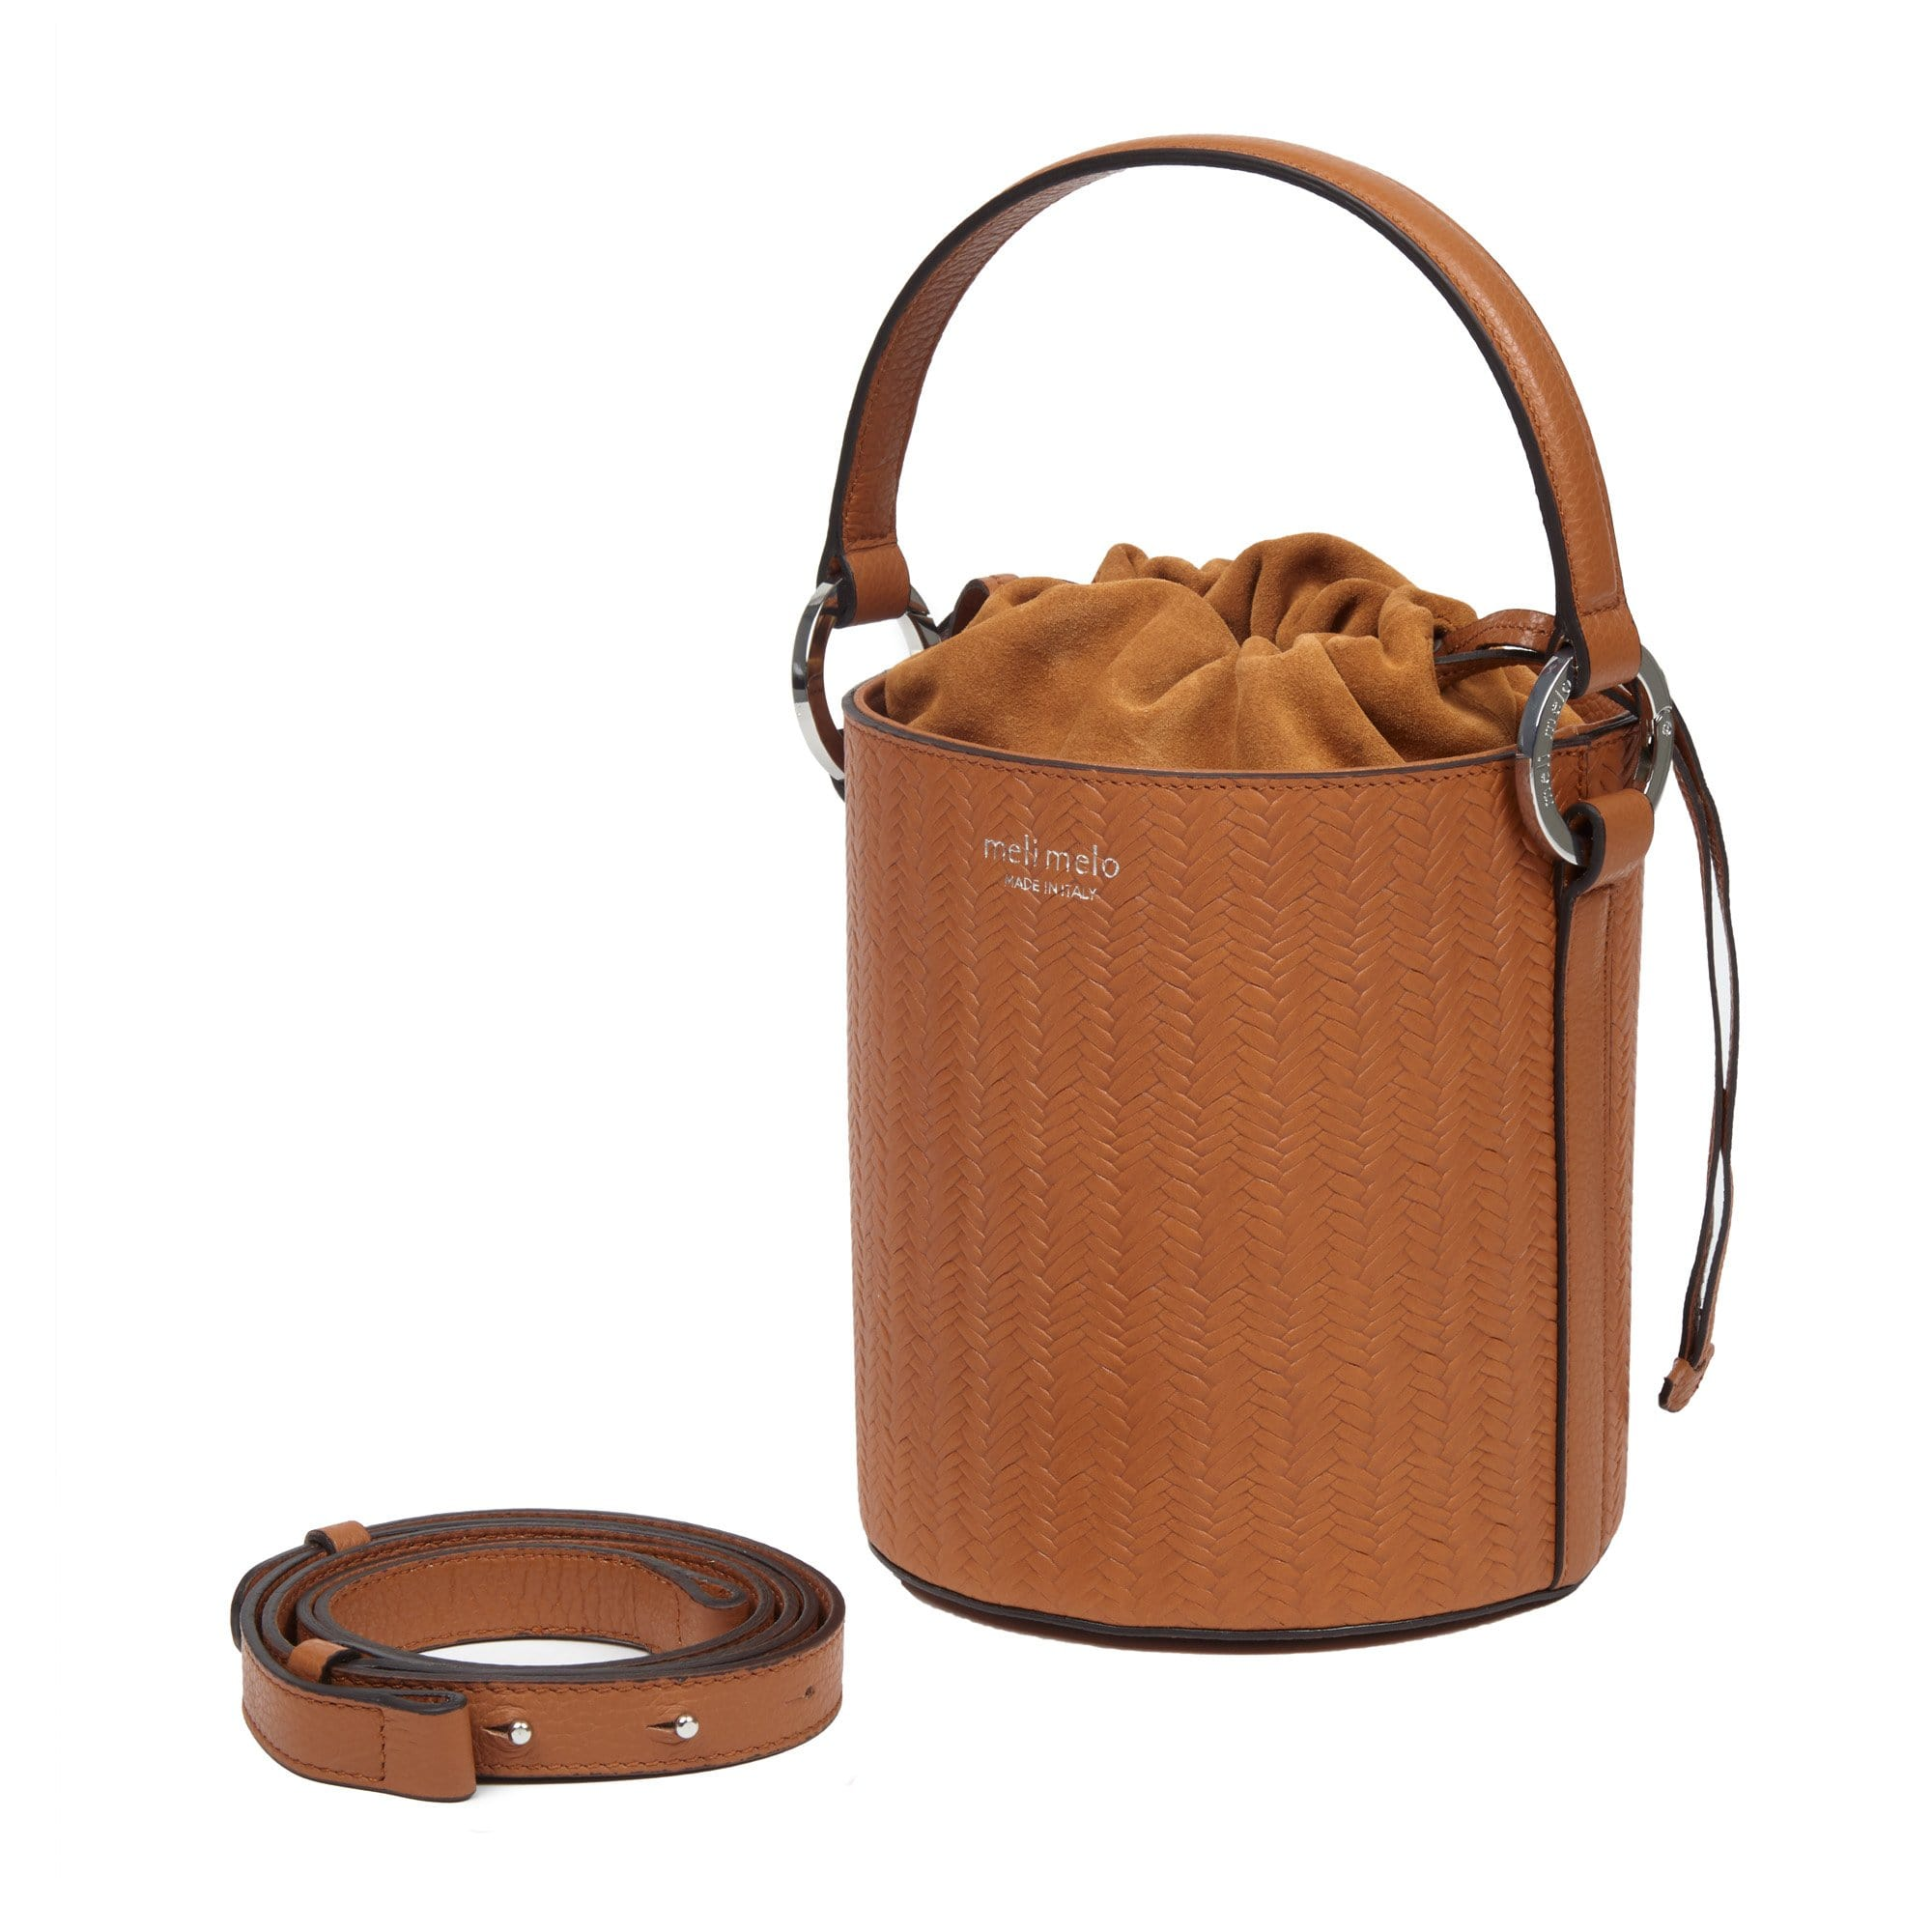 Santina Tan Woven Leather Bucket Bag for Women